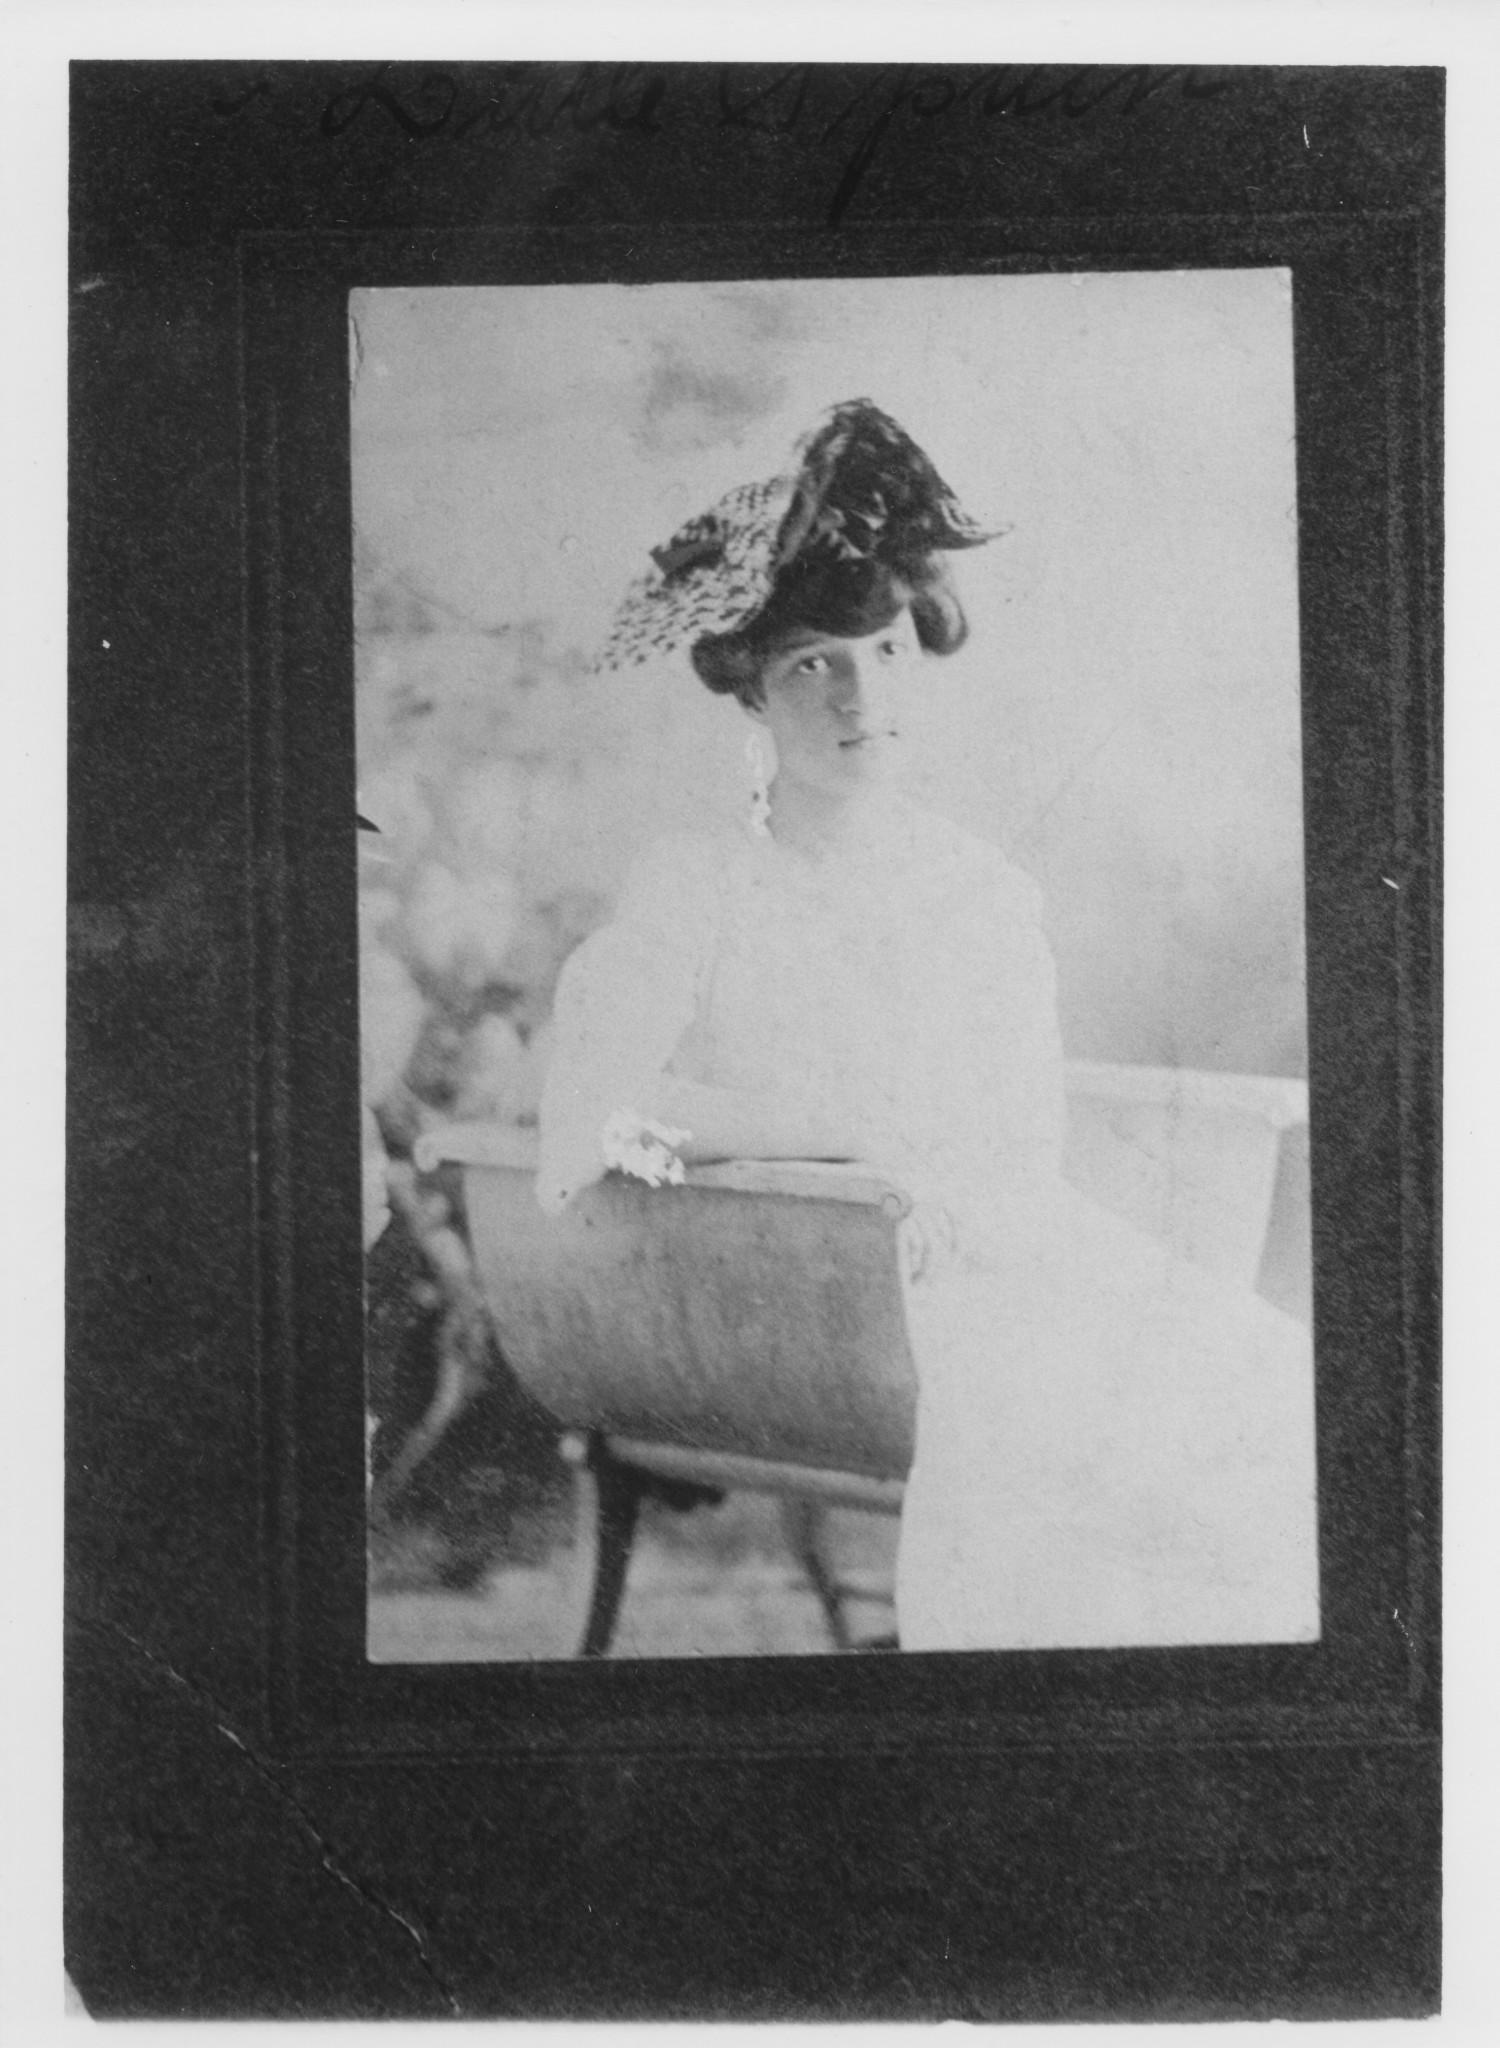 Woman Seated in Curved Chair                                                                                                      [Sequence #]: 1 of 1